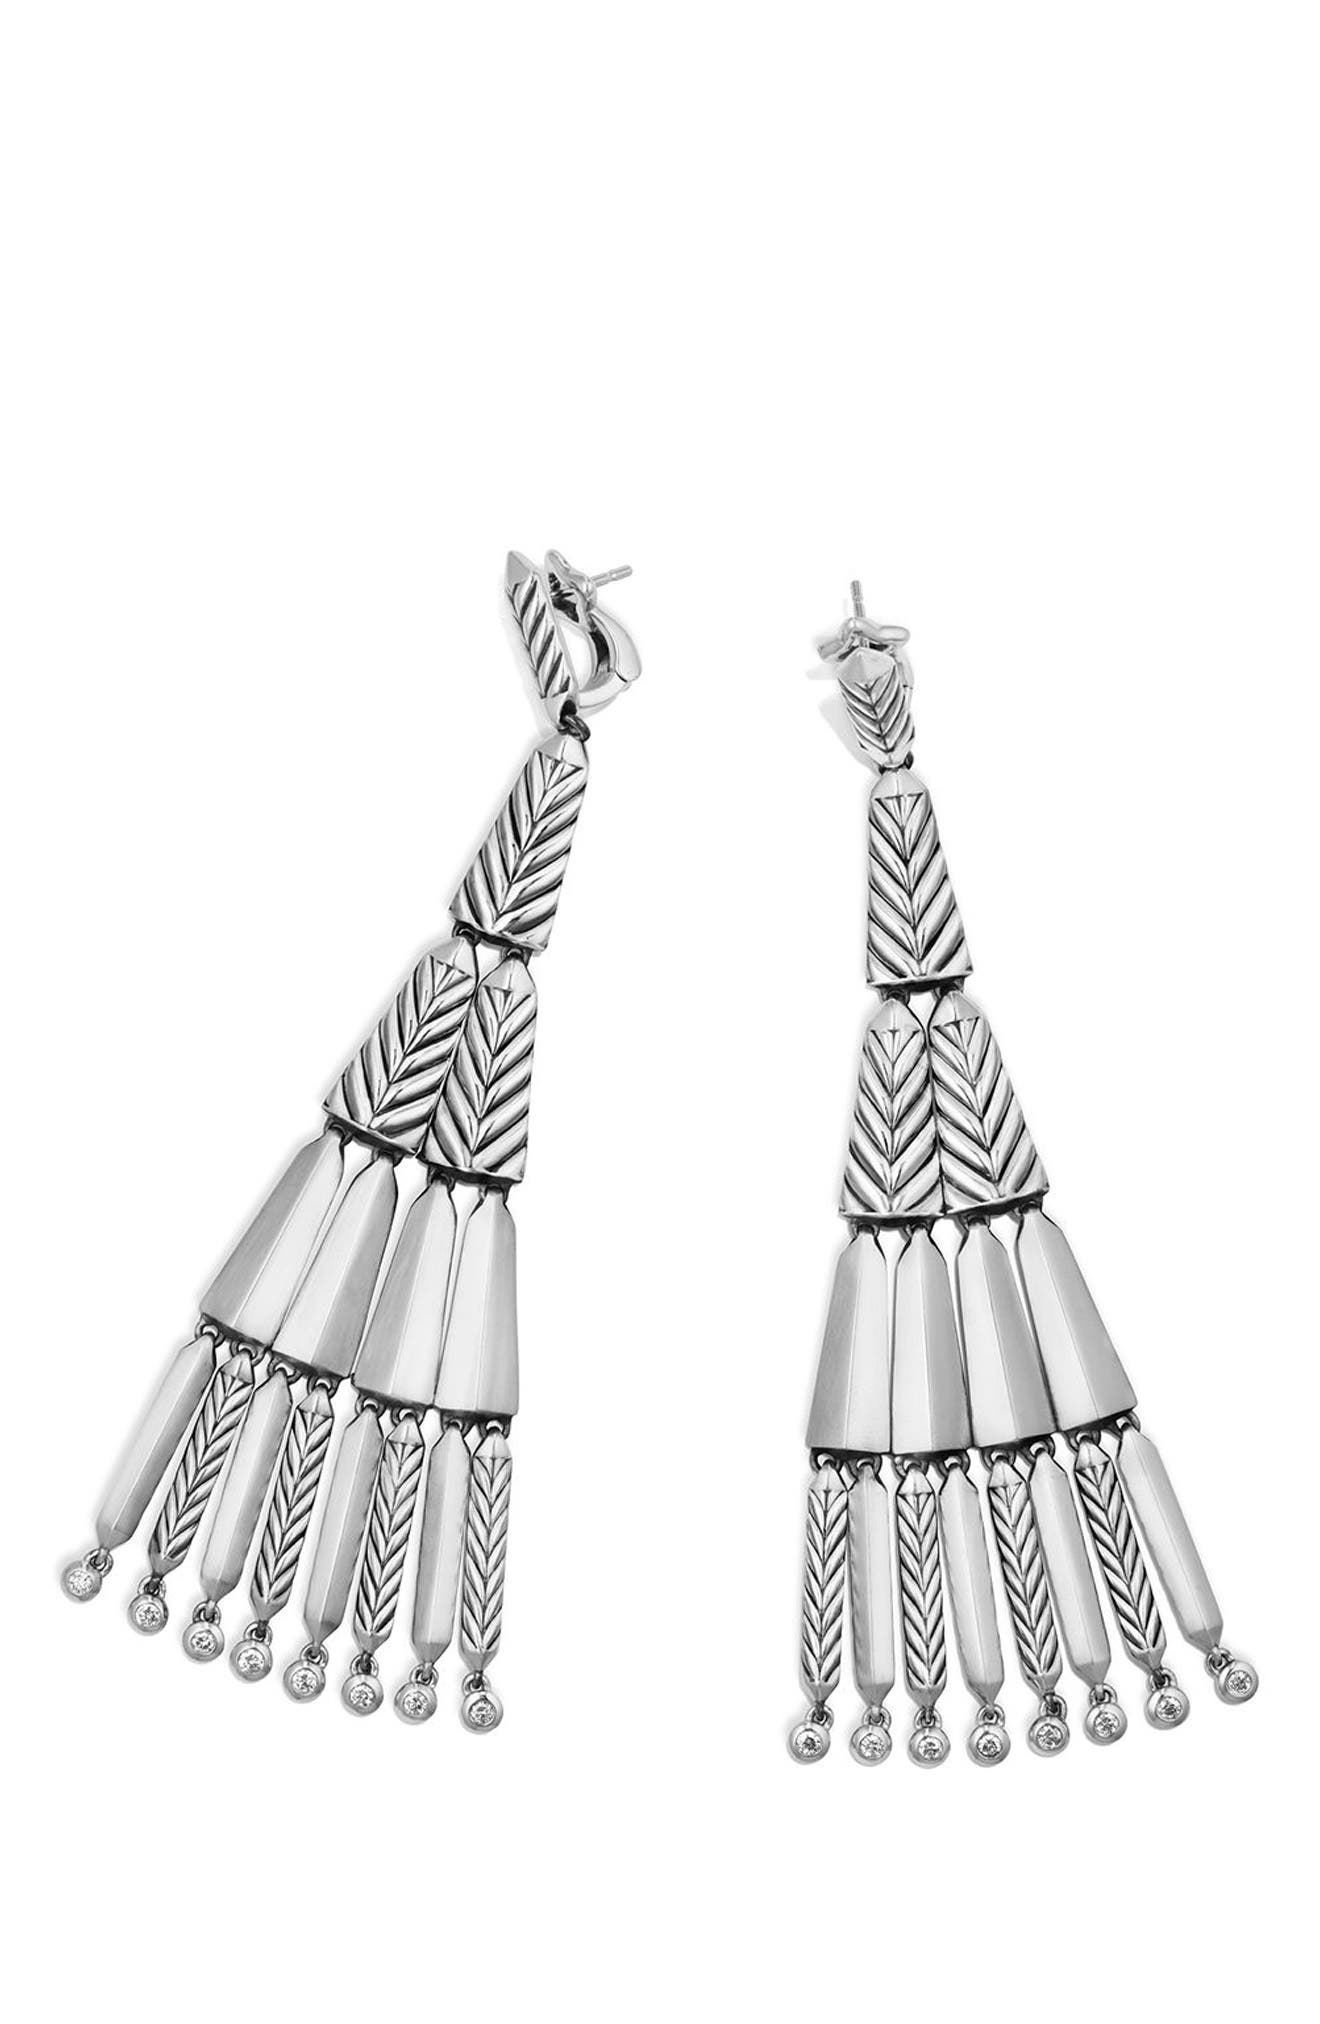 Stax Fringe Earrings with Diamonds,                             Alternate thumbnail 3, color,                             SILVER